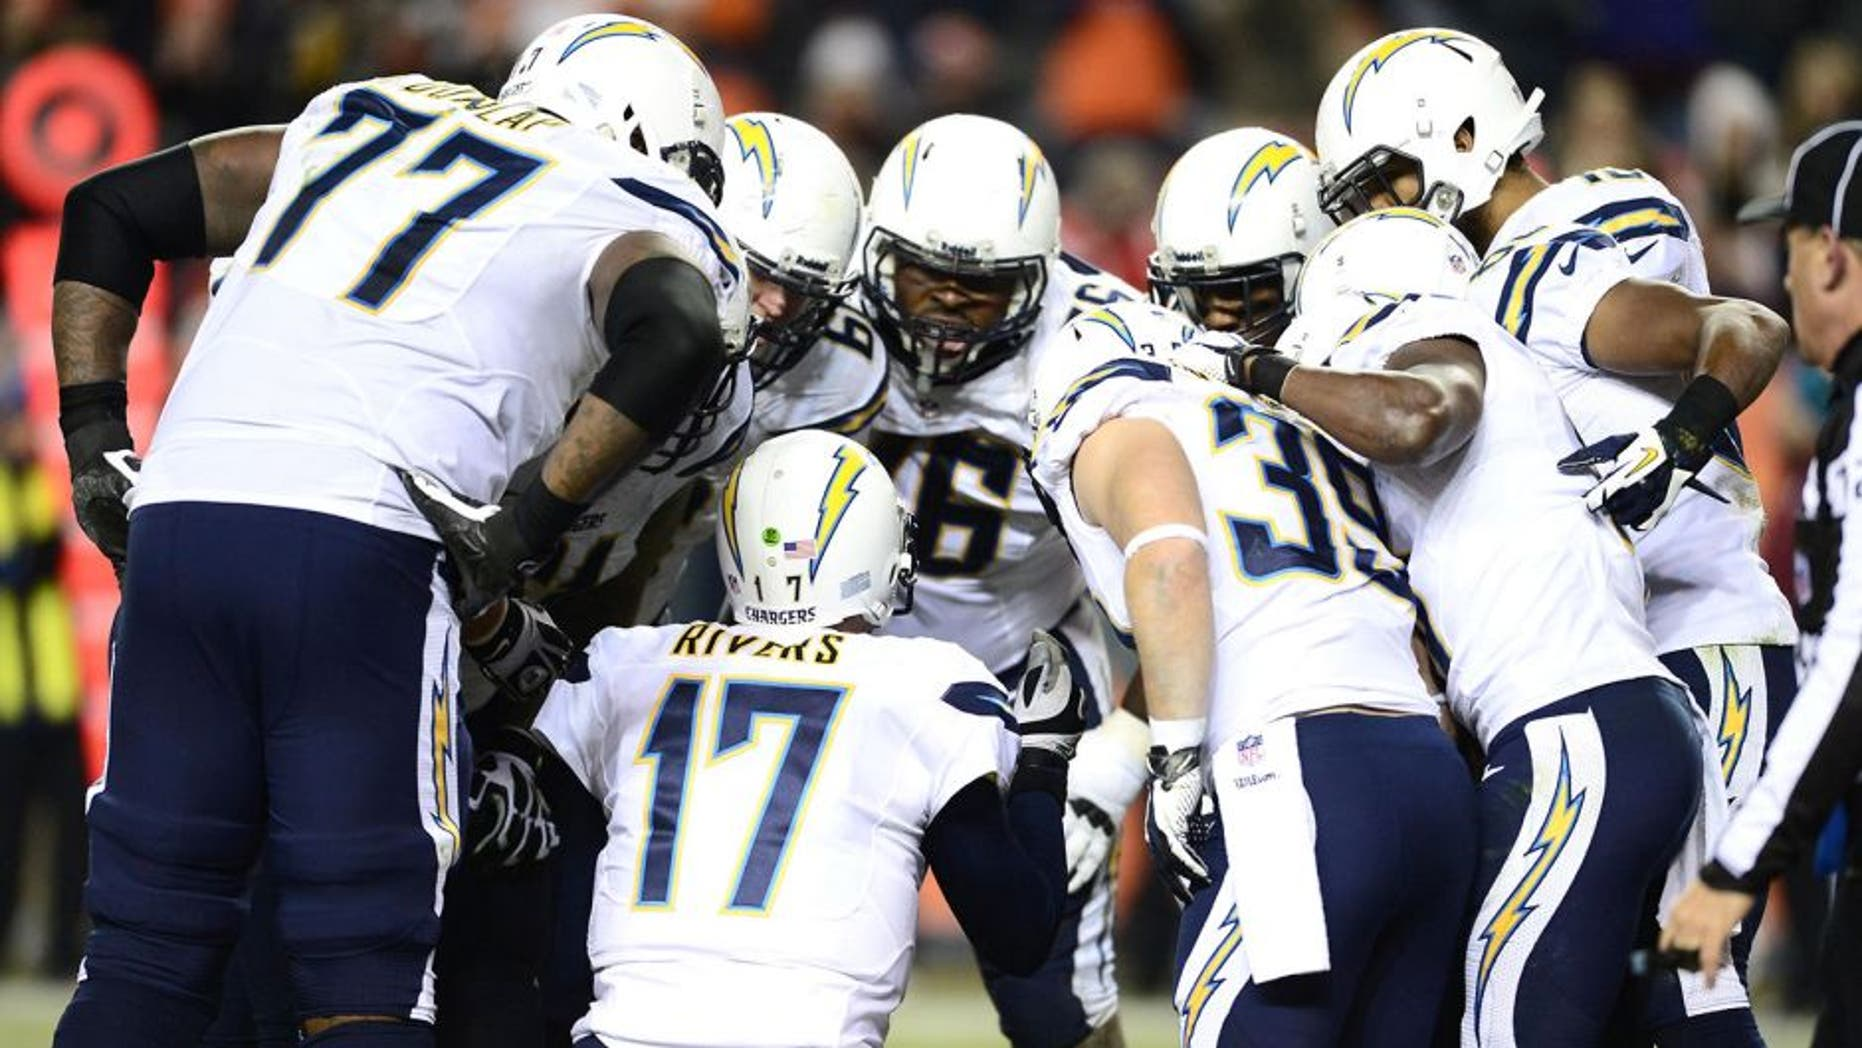 Dec 12, 2013; Denver, CO, USA; San Diego Chargers quarterback Philip Rivers (17) huddles with center Nick Hardwick (61) and tackle King Dunlap (77) and offensive tackle D.J. Fluker (76) and running back Danny Woodhead (39) and wide receiver Vincent Brown (86) and wide receiver Keenan Allen (13) and tight end Antonio Gates (85) in the fourth quarter against the Denver Broncos at Sports Authority Field at Mile High. The San Diego Chargers defeated the Denver Broncos 27-20. Mandatory Credit: Ron Chenoy-USA TODAY Sports